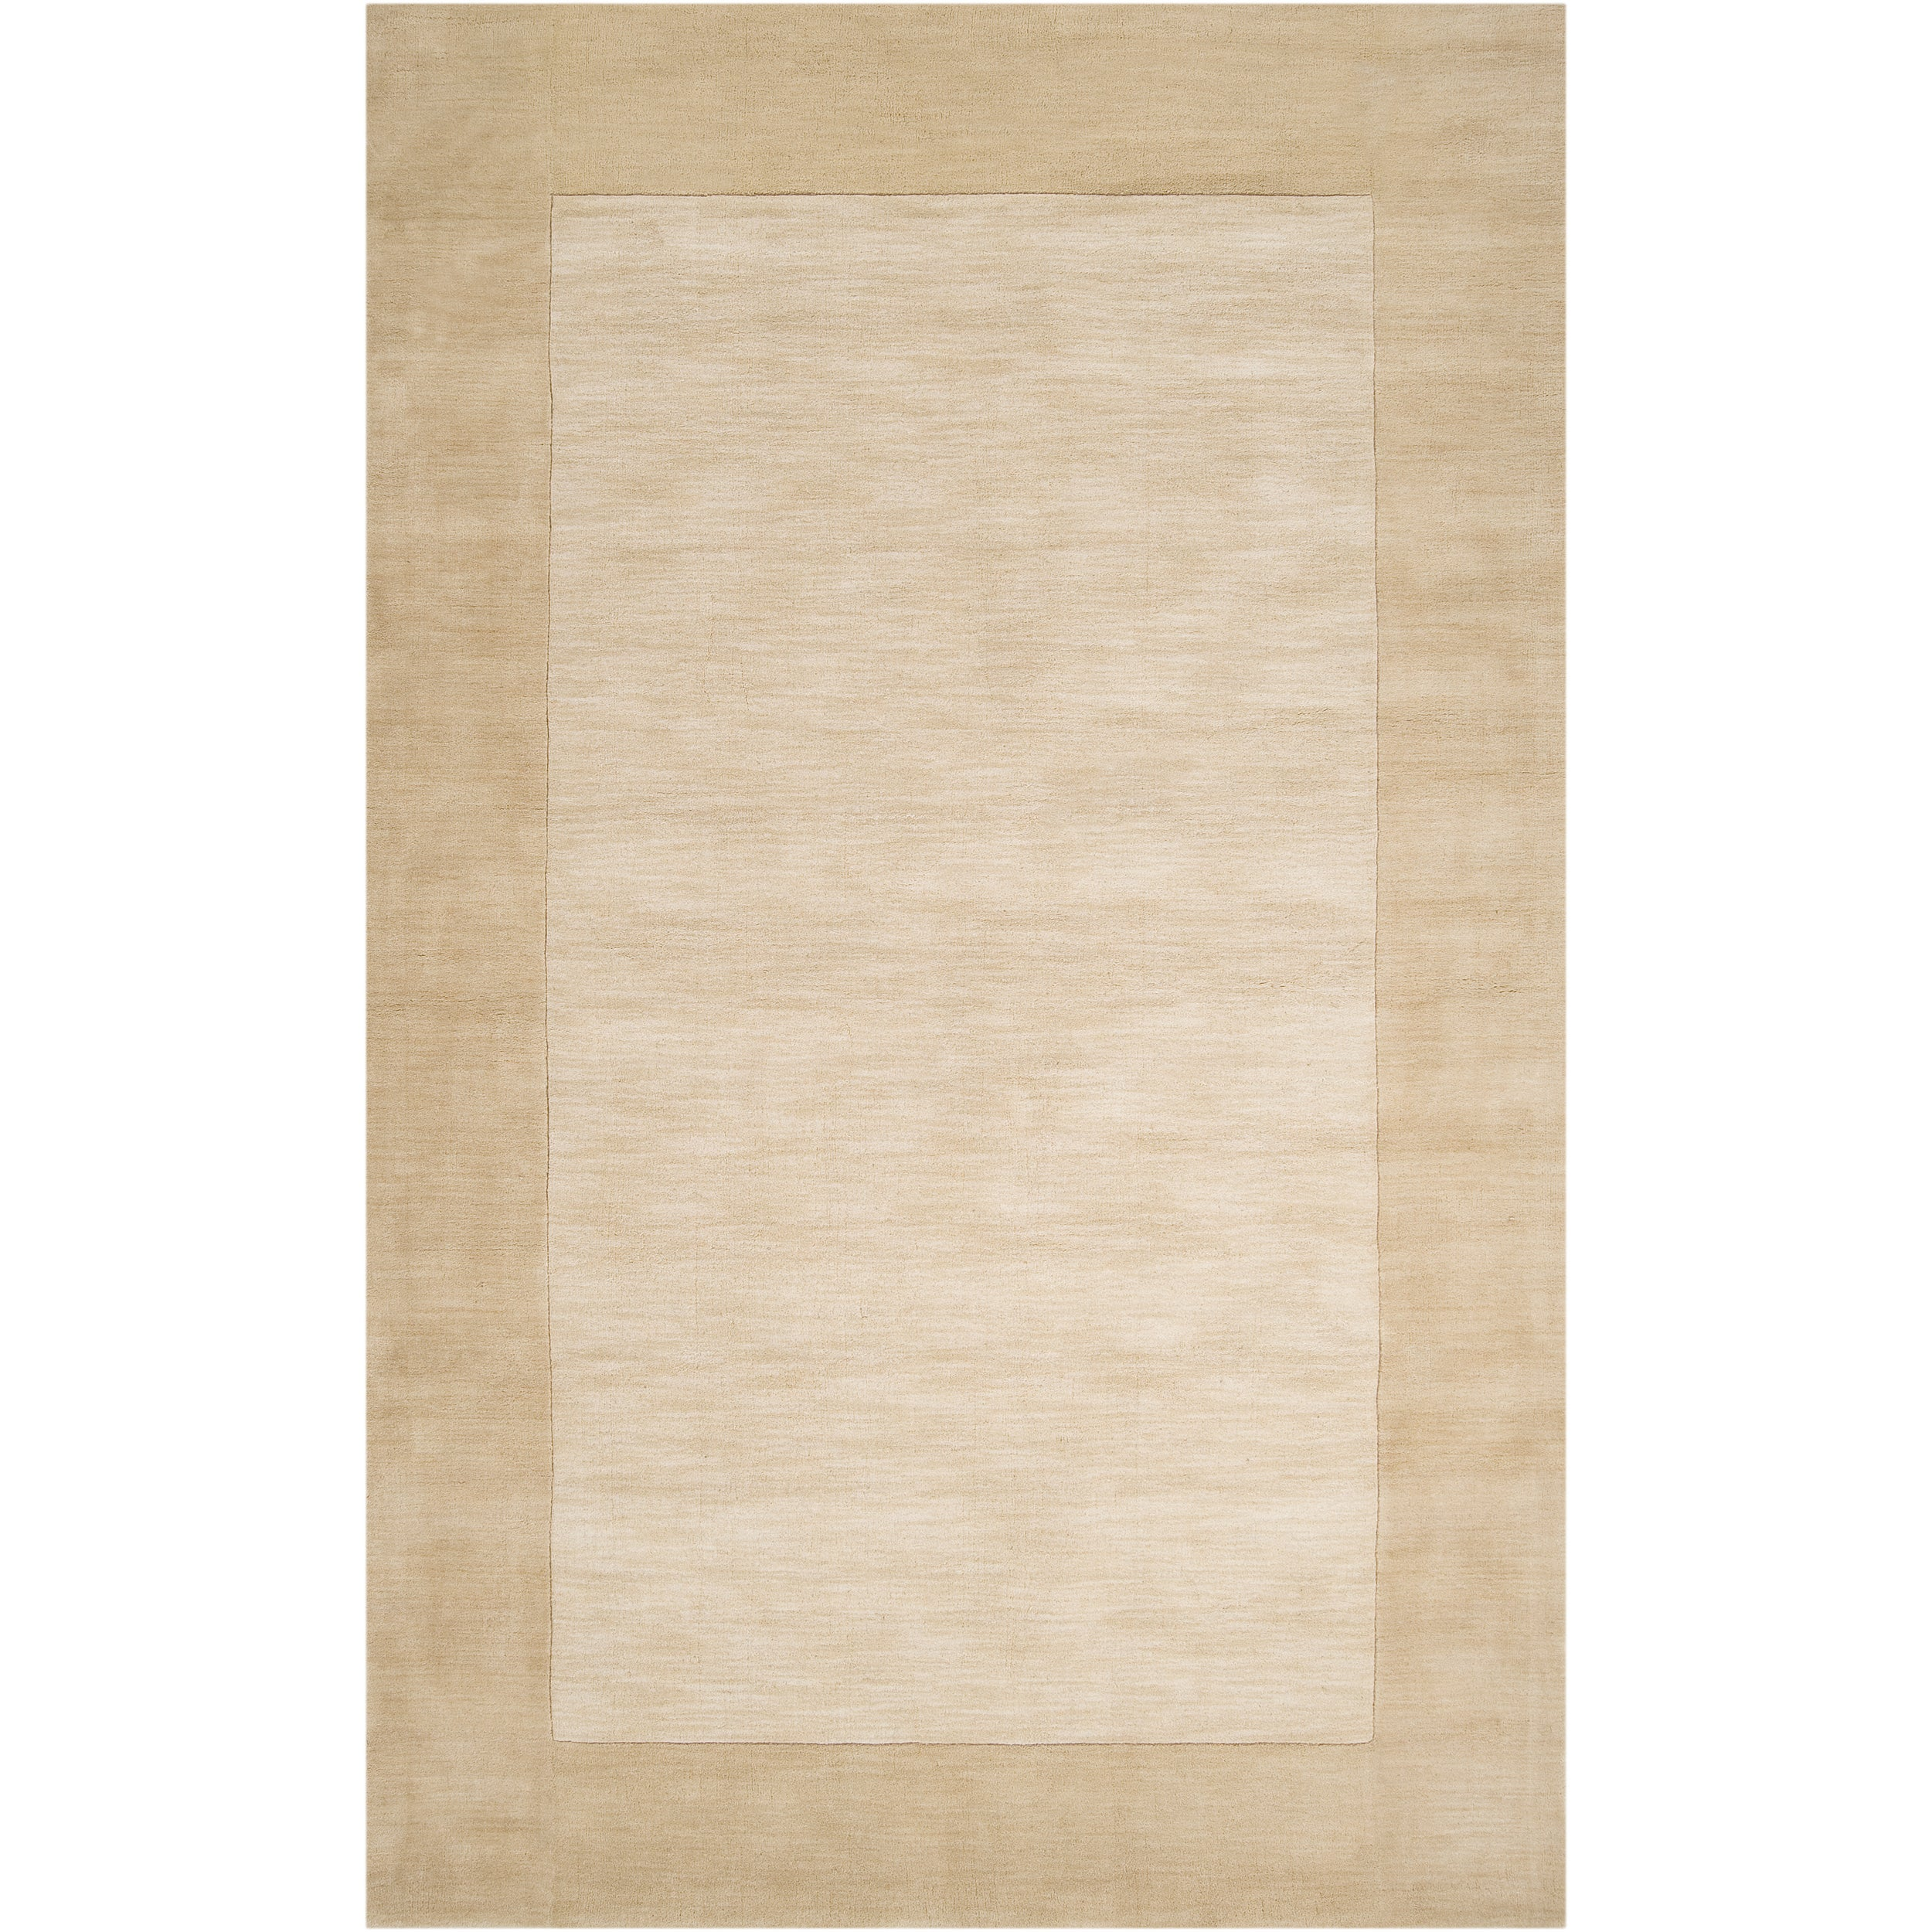 Hand-crafted Beige Tone-On-Tone Bordered Disposo Wool Area Rug (7'6 x 9'6)